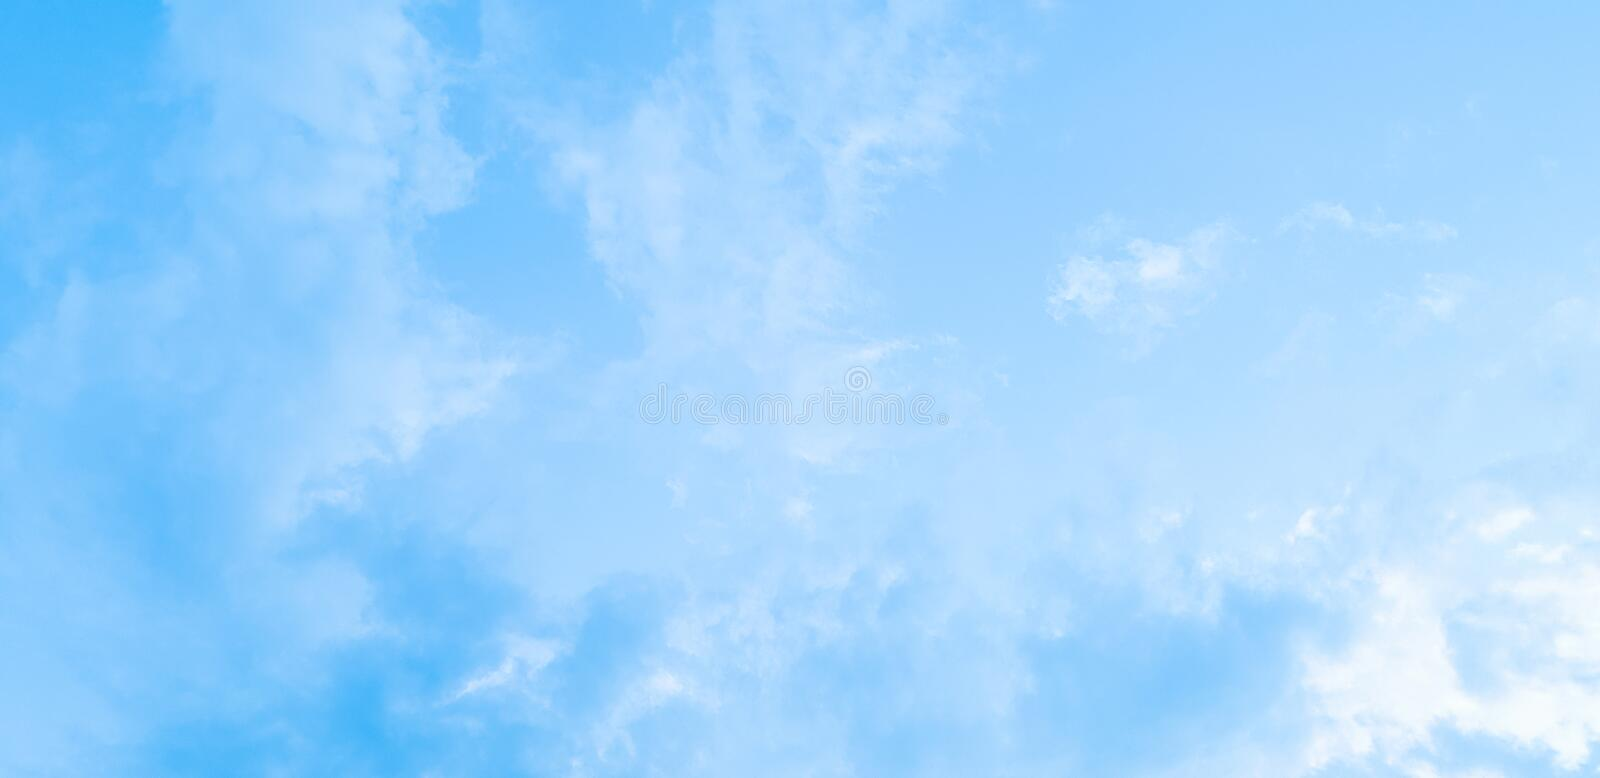 Cumulus of Clouds and blue sky Abstract background royalty free stock photography